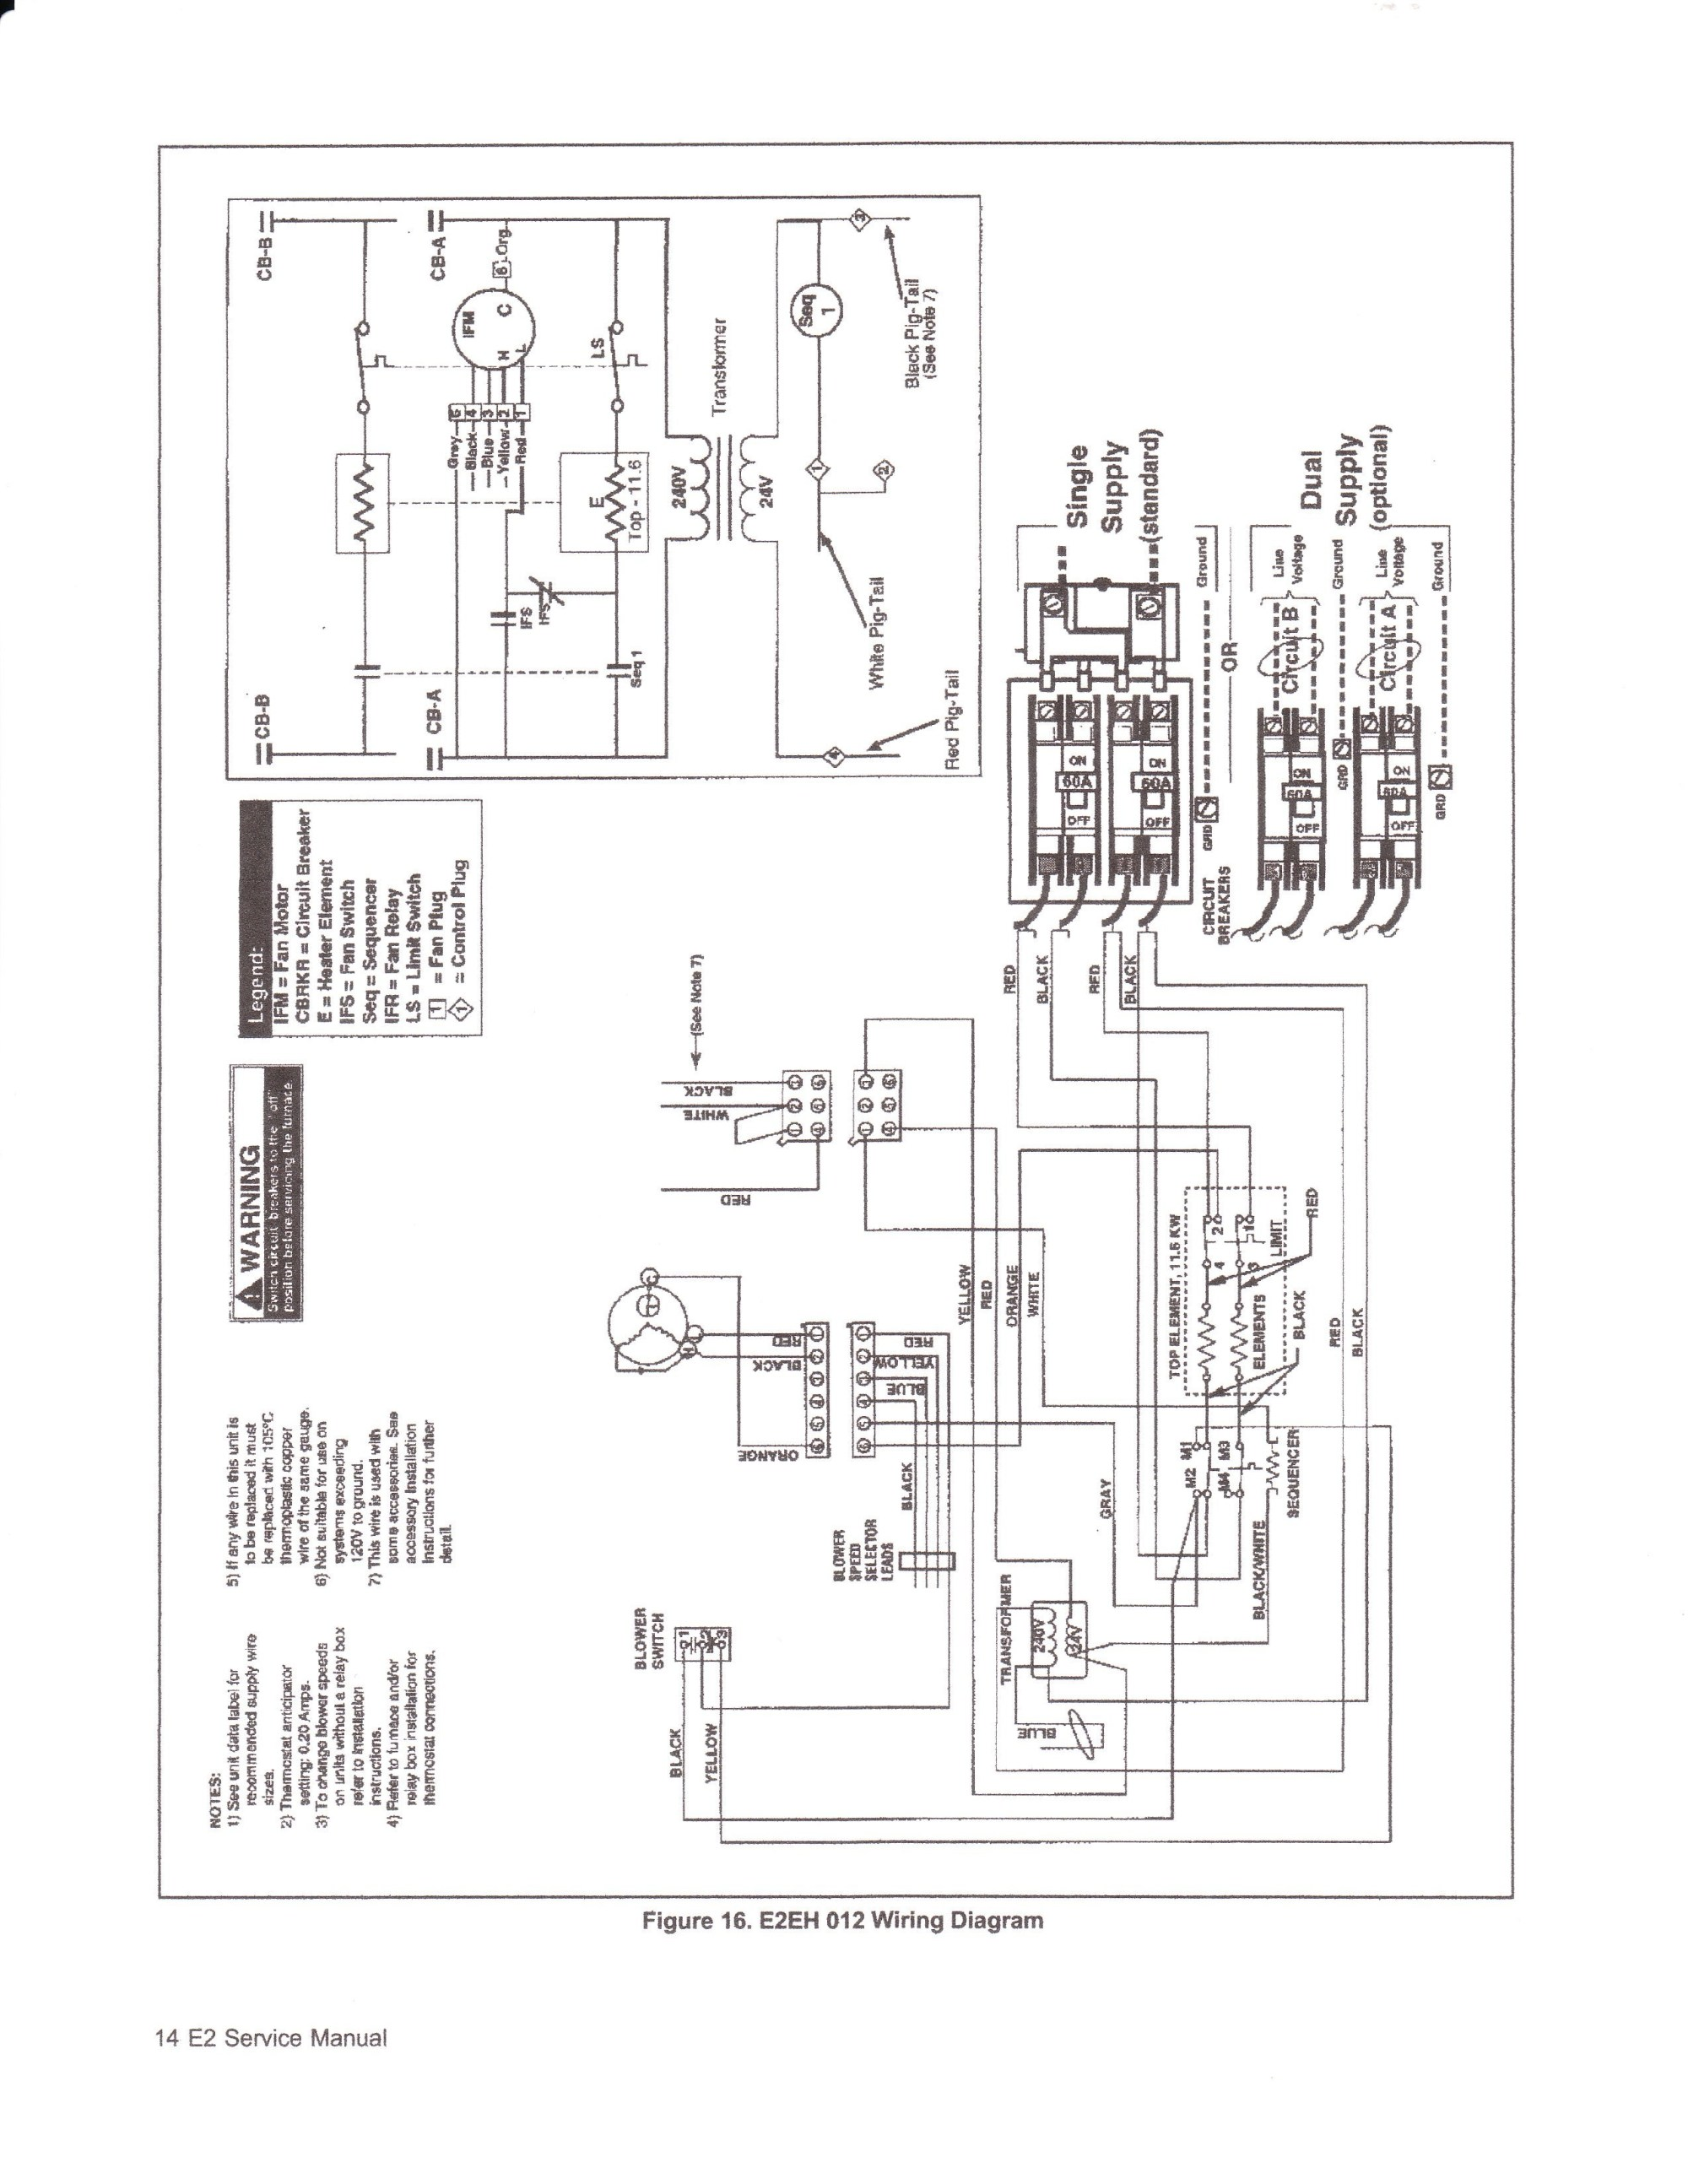 hight resolution of nordyne heat strip wiring diagram wiring diagram third level rh 4 8 21 jacobwinterstein com nordyne furnace troubleshooting nordyne gas furnace wiring